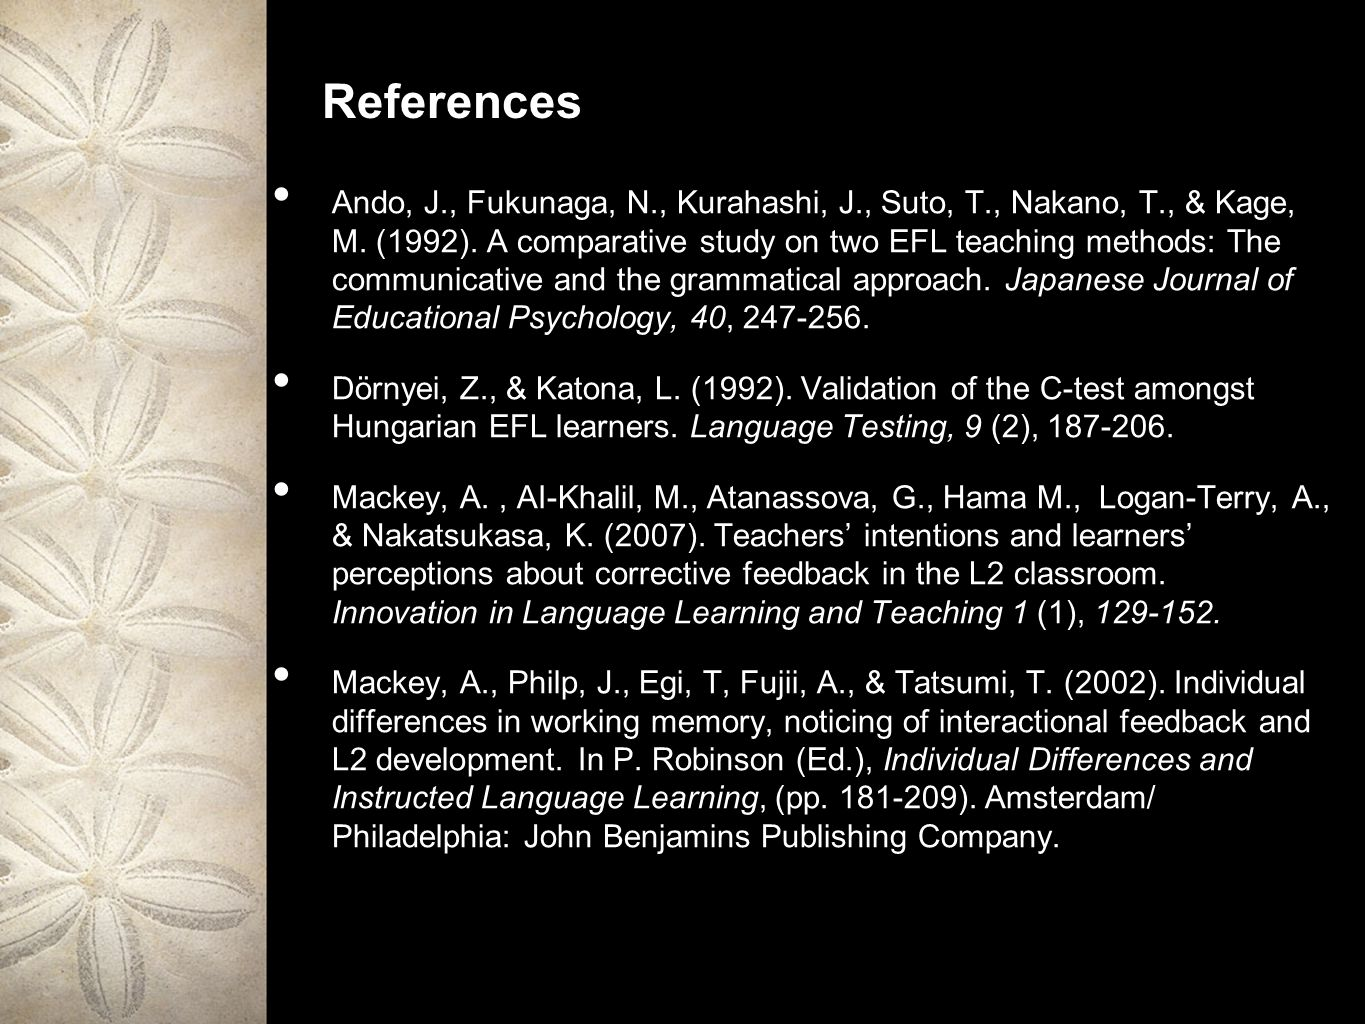 References Ando, J., Fukunaga, N., Kurahashi, J., Suto, T., Nakano, T., & Kage, M. (1992). A comparative study on two EFL teaching methods: The commun